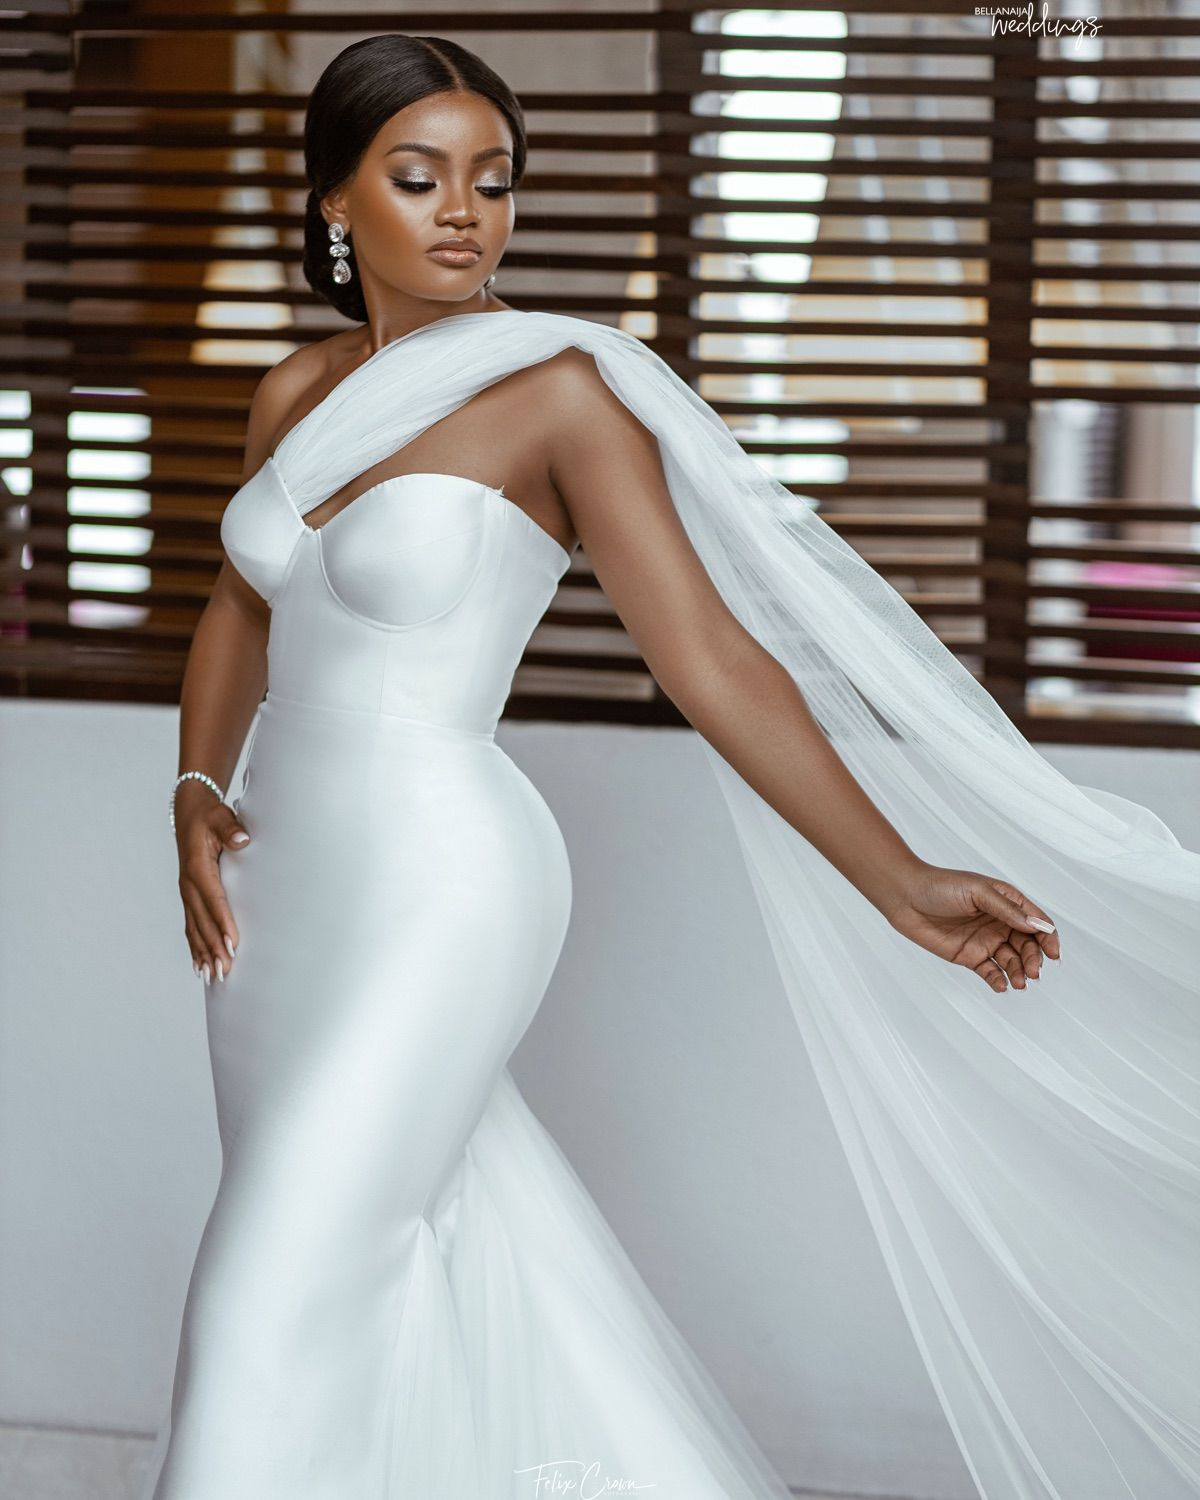 This Bride Shut it Down in these 4 Stunning Outfits for her Wedding!